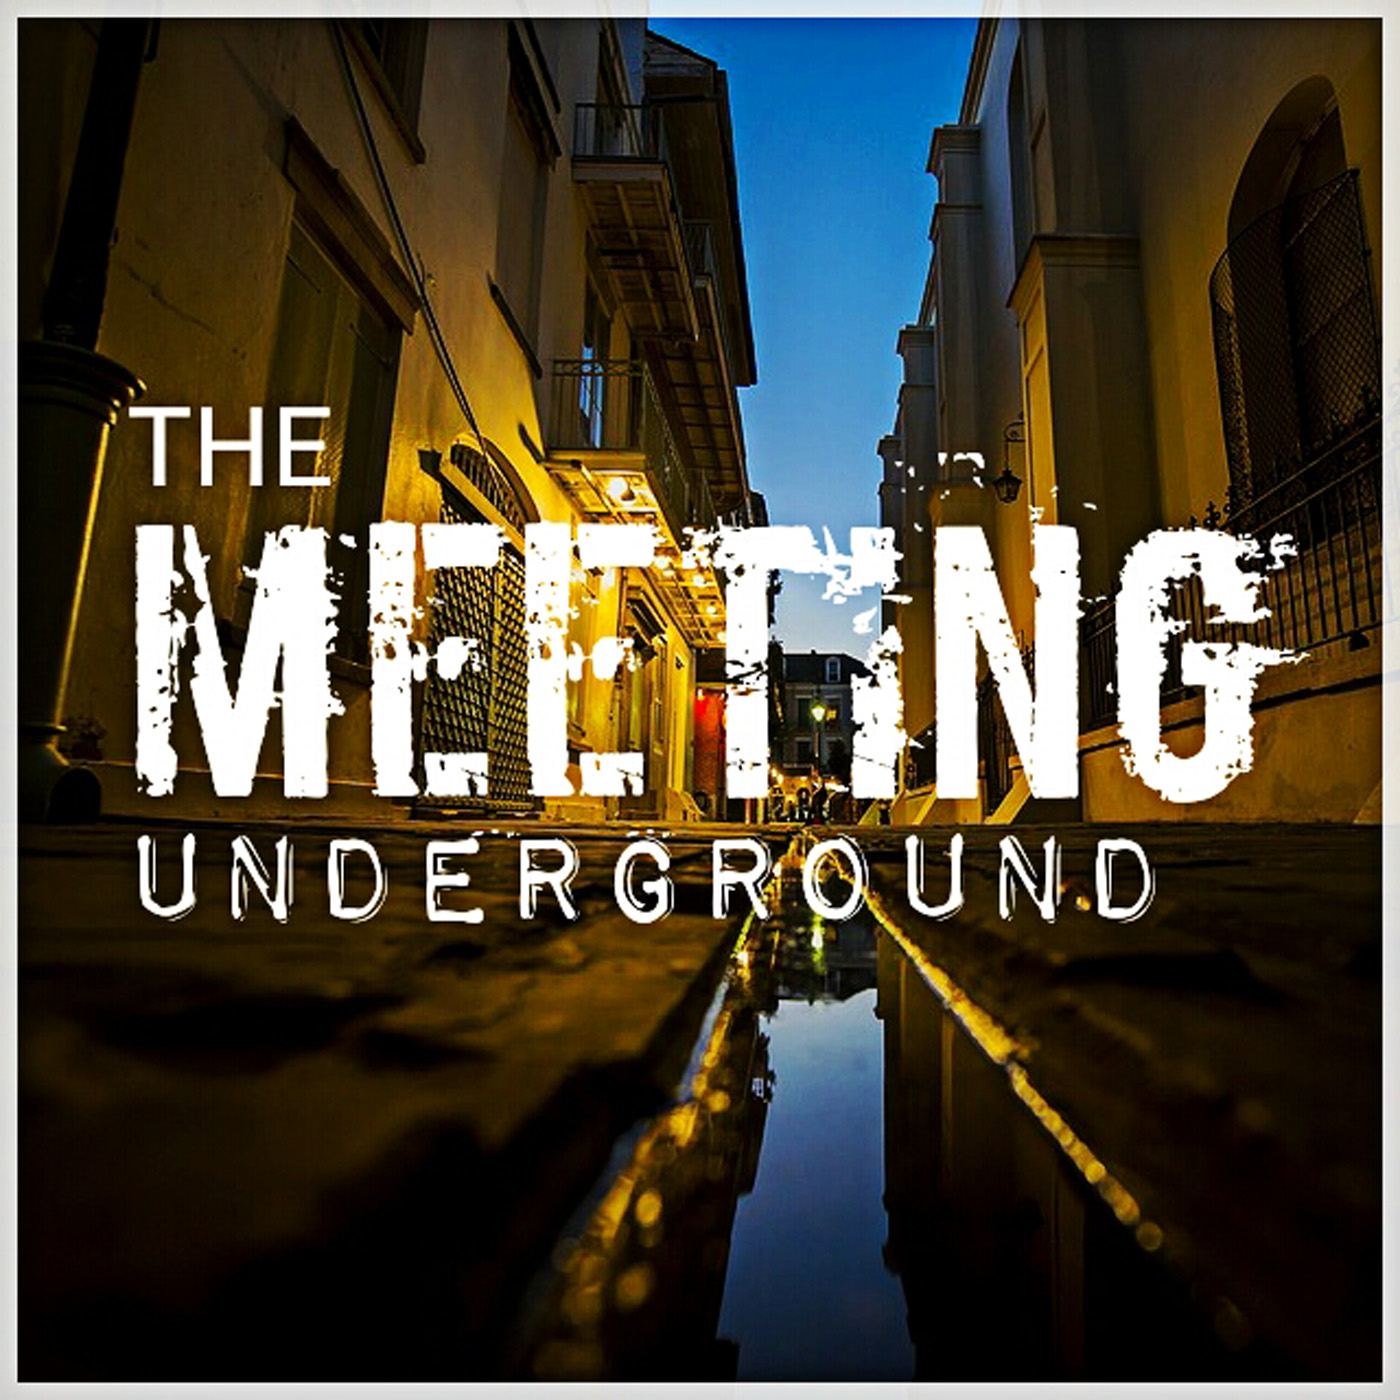 01. Pilot Episode. John Edward LaFave introduces The Meeting Underground, plus a discussion on Songwriting.